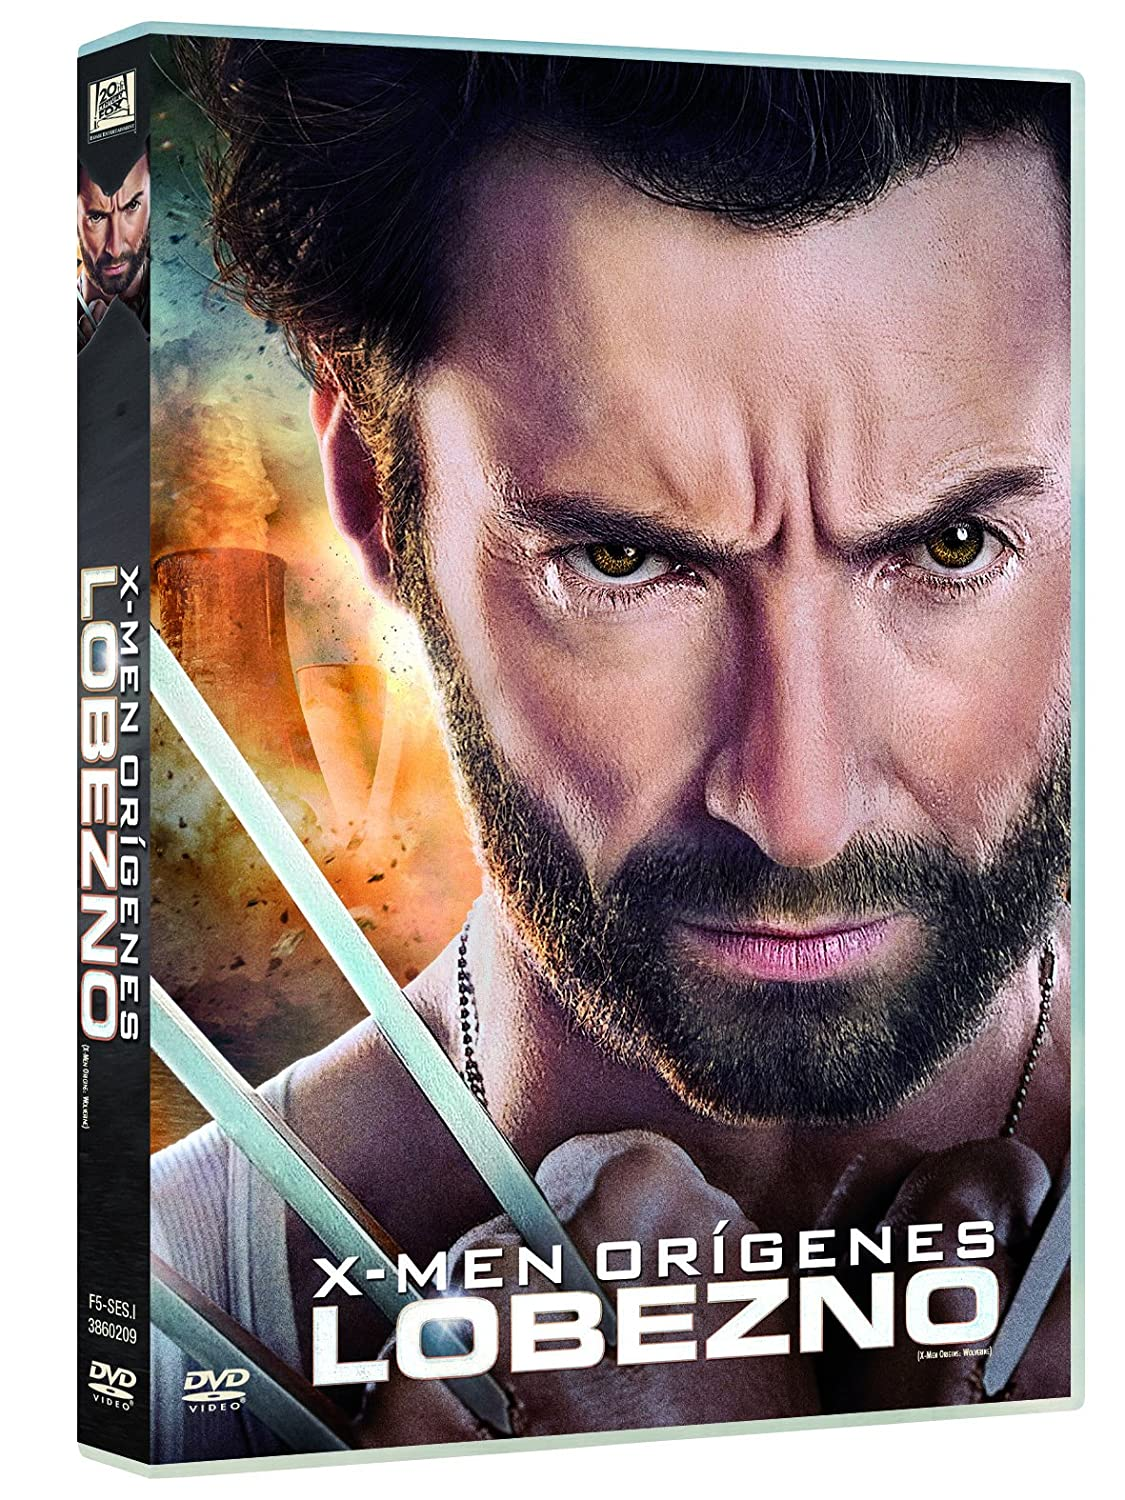 X-Men Orígenes: Lobezno [DVD]: Amazon.es: Hugh Jackman, Ryan Reynolds, Liev Schreiber, Dominic Monaghan, Lynn Collins, Danny Huston, Gavin Hood, Hugh Jackman, Ryan Reynolds: Cine y Series TV